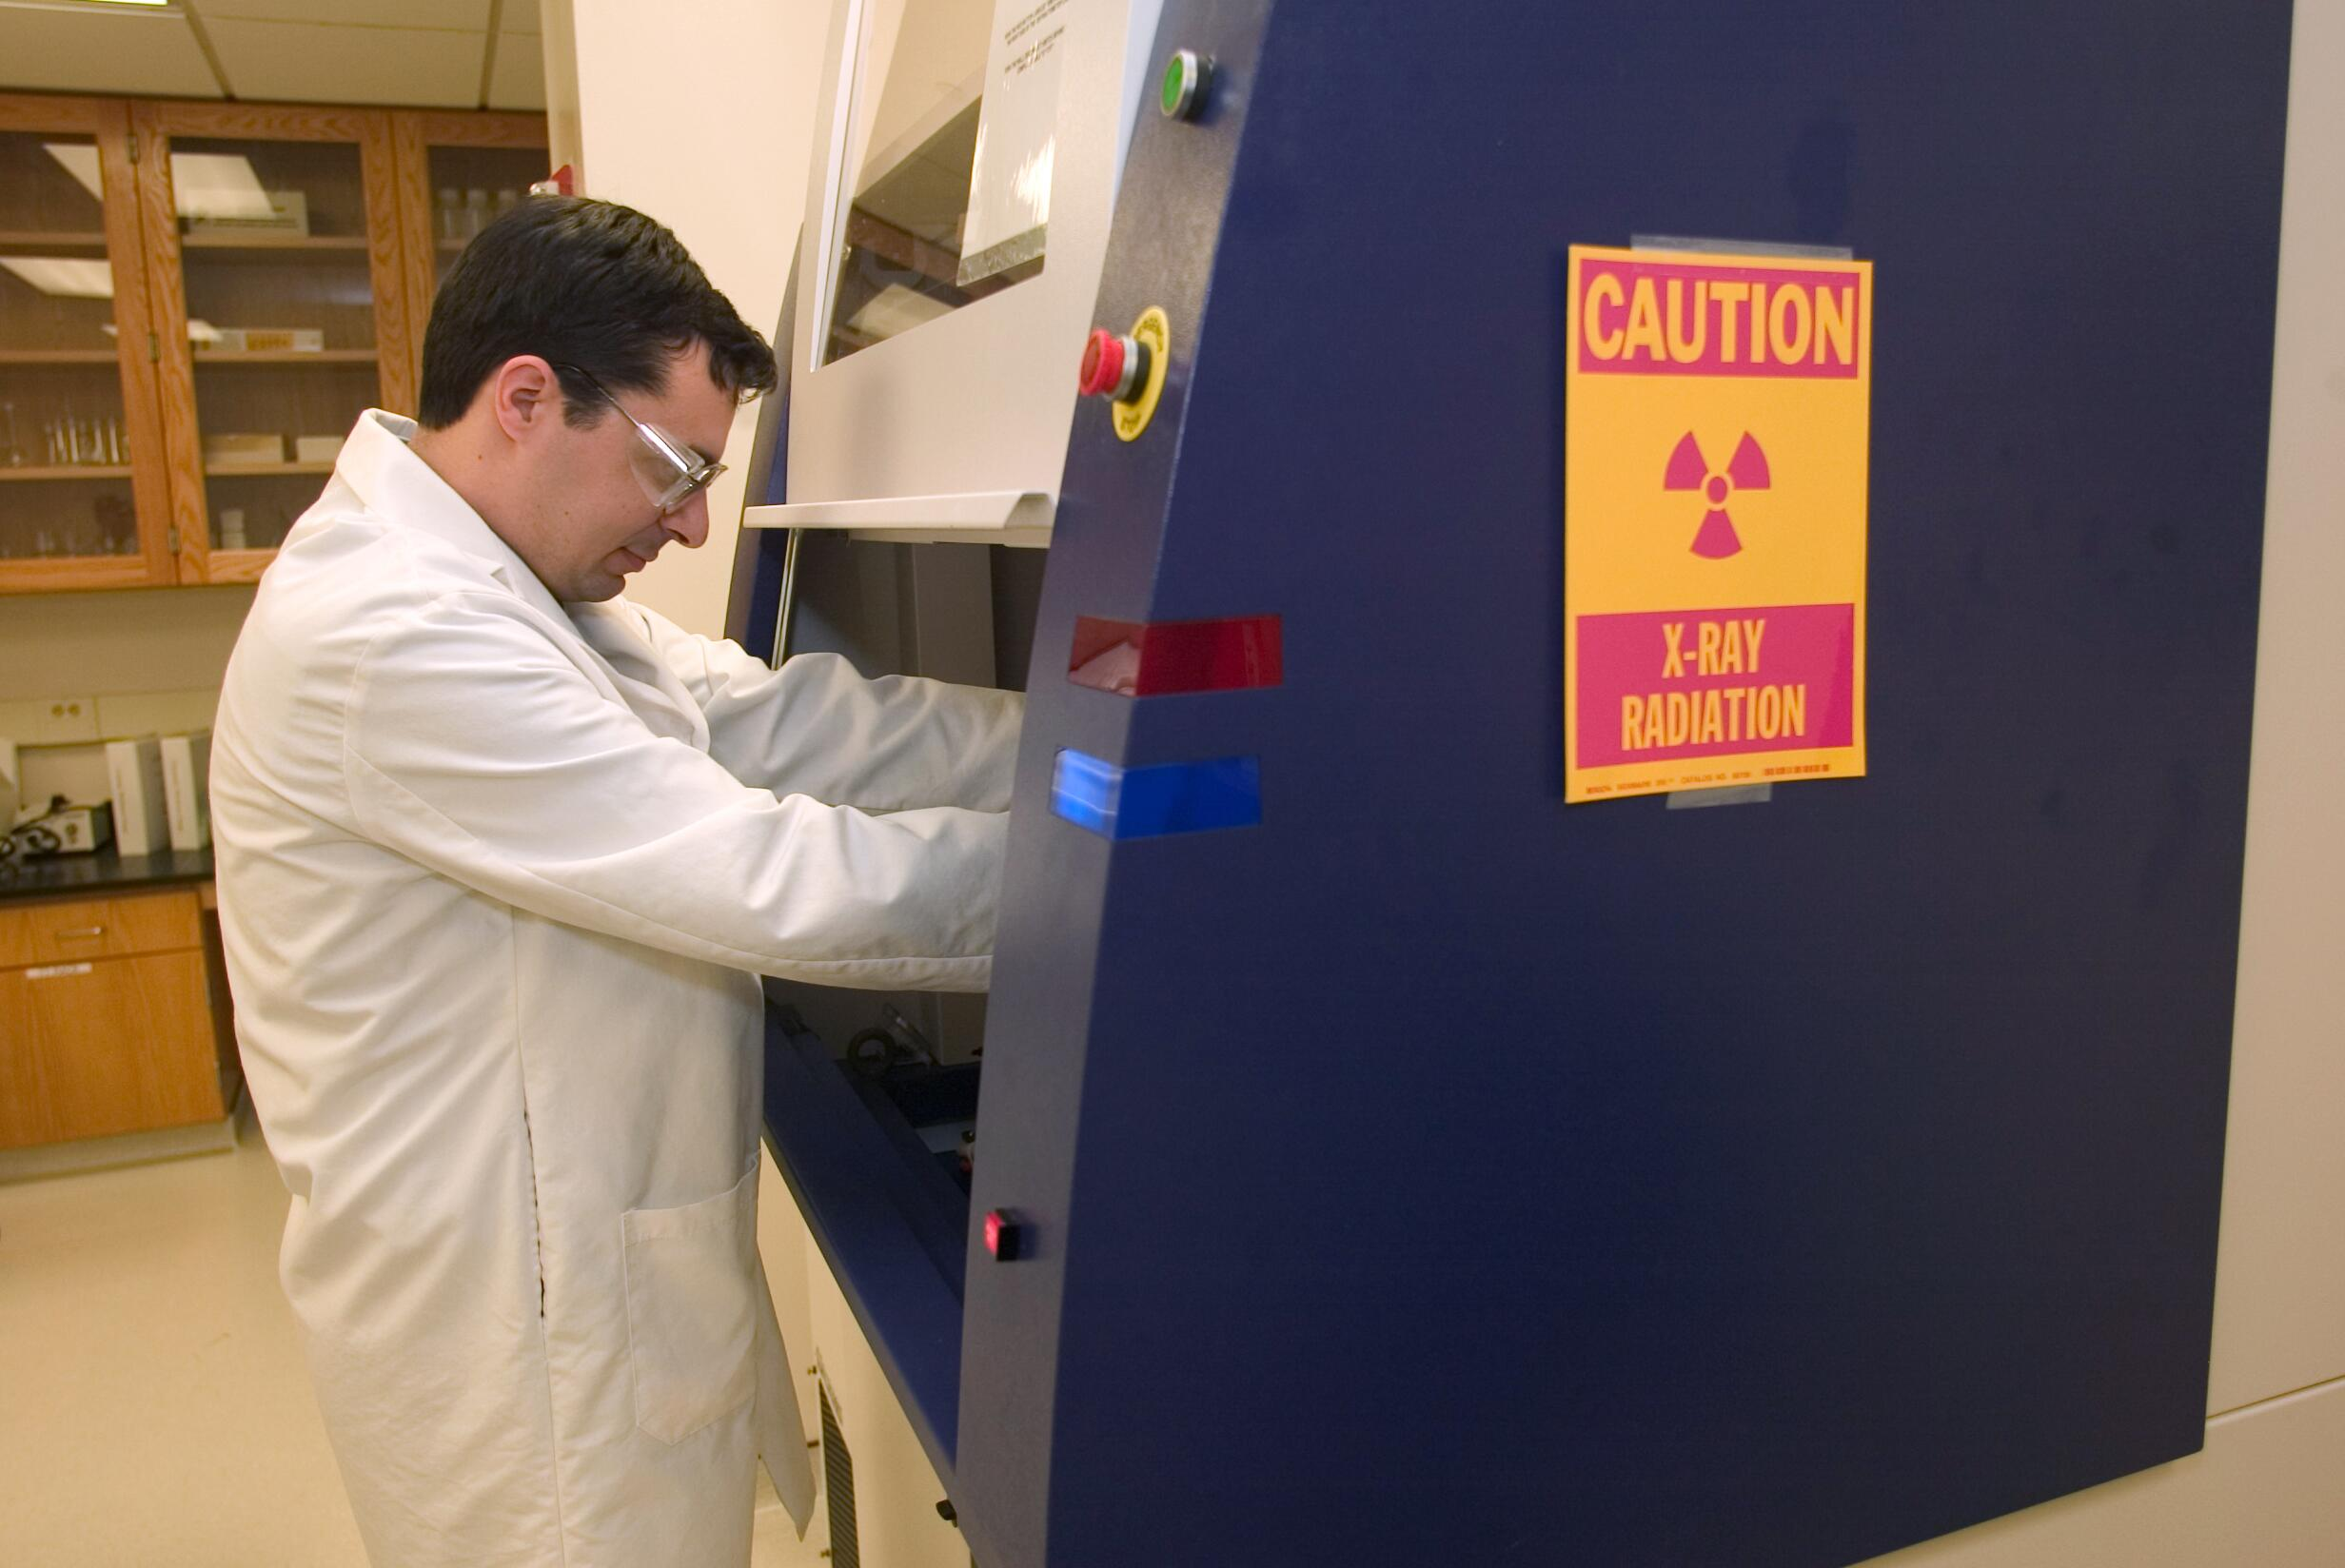 CBP Laboratory personnel remove items from x-ray testing equipment.